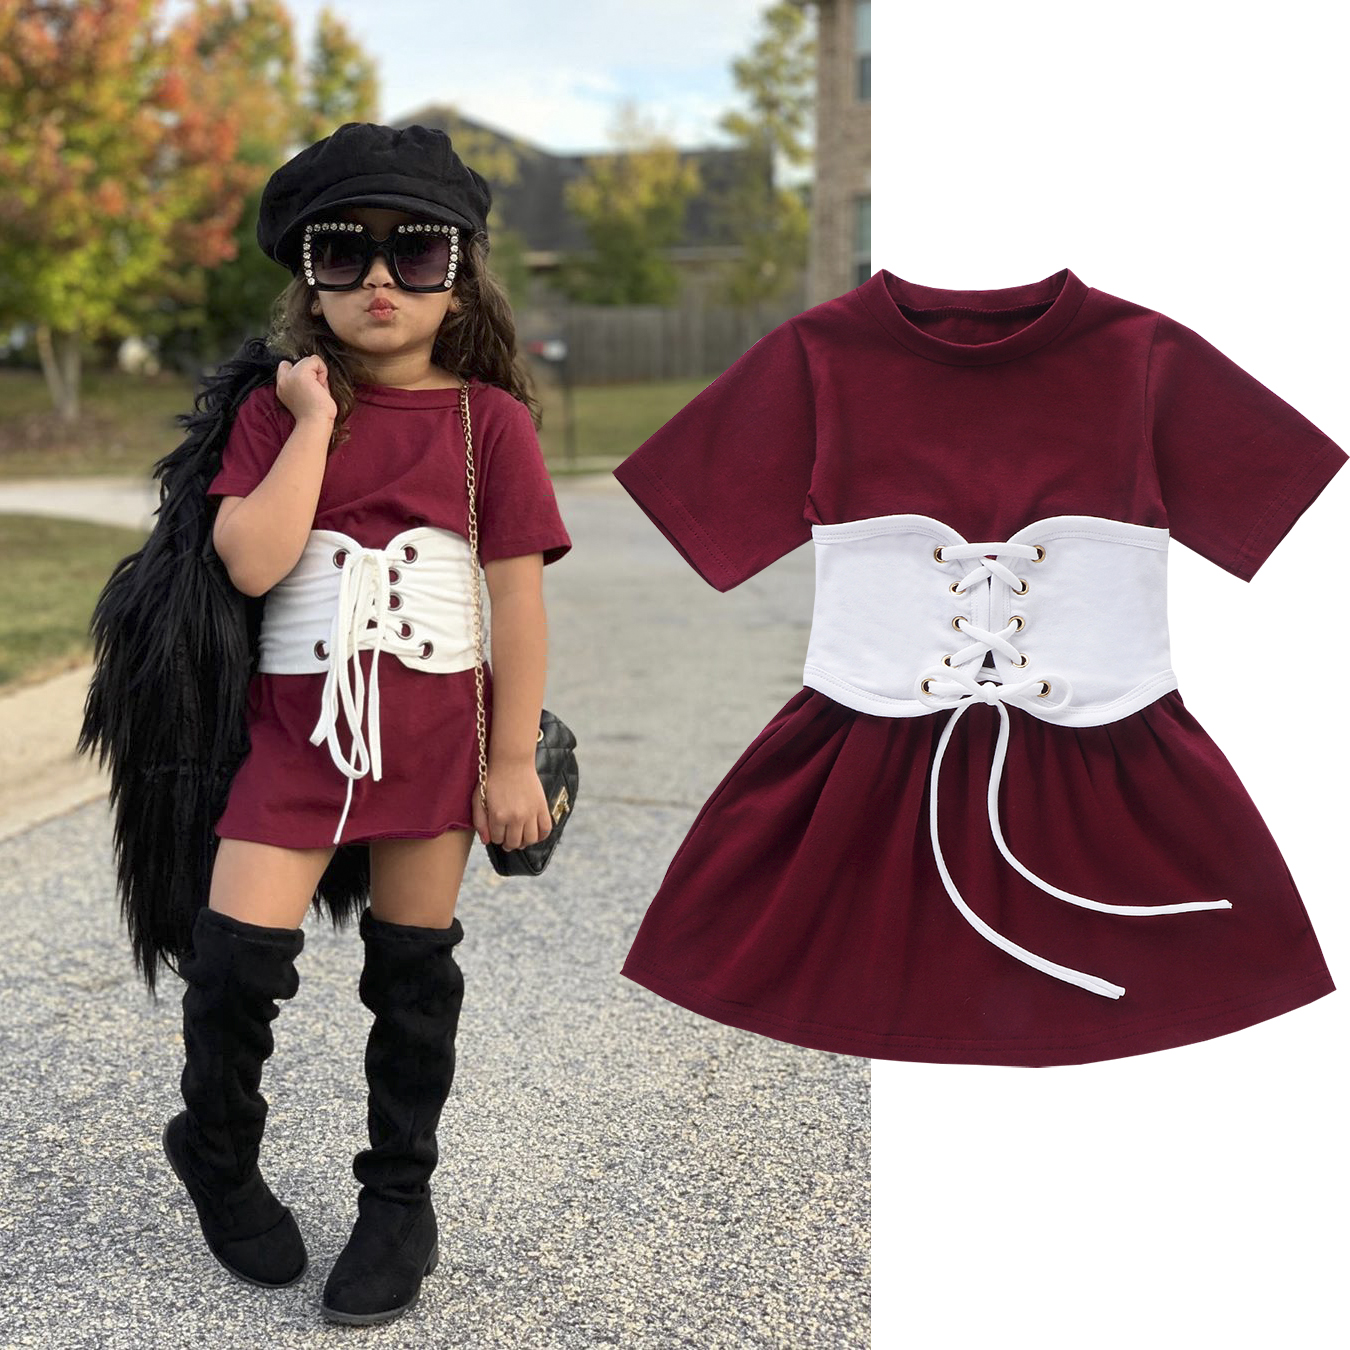 1-6Y Toddler Baby Girls Dress+Belt 2pcs Solid Short Sleeve Knee Length A-Line Dress Fashion Outfits